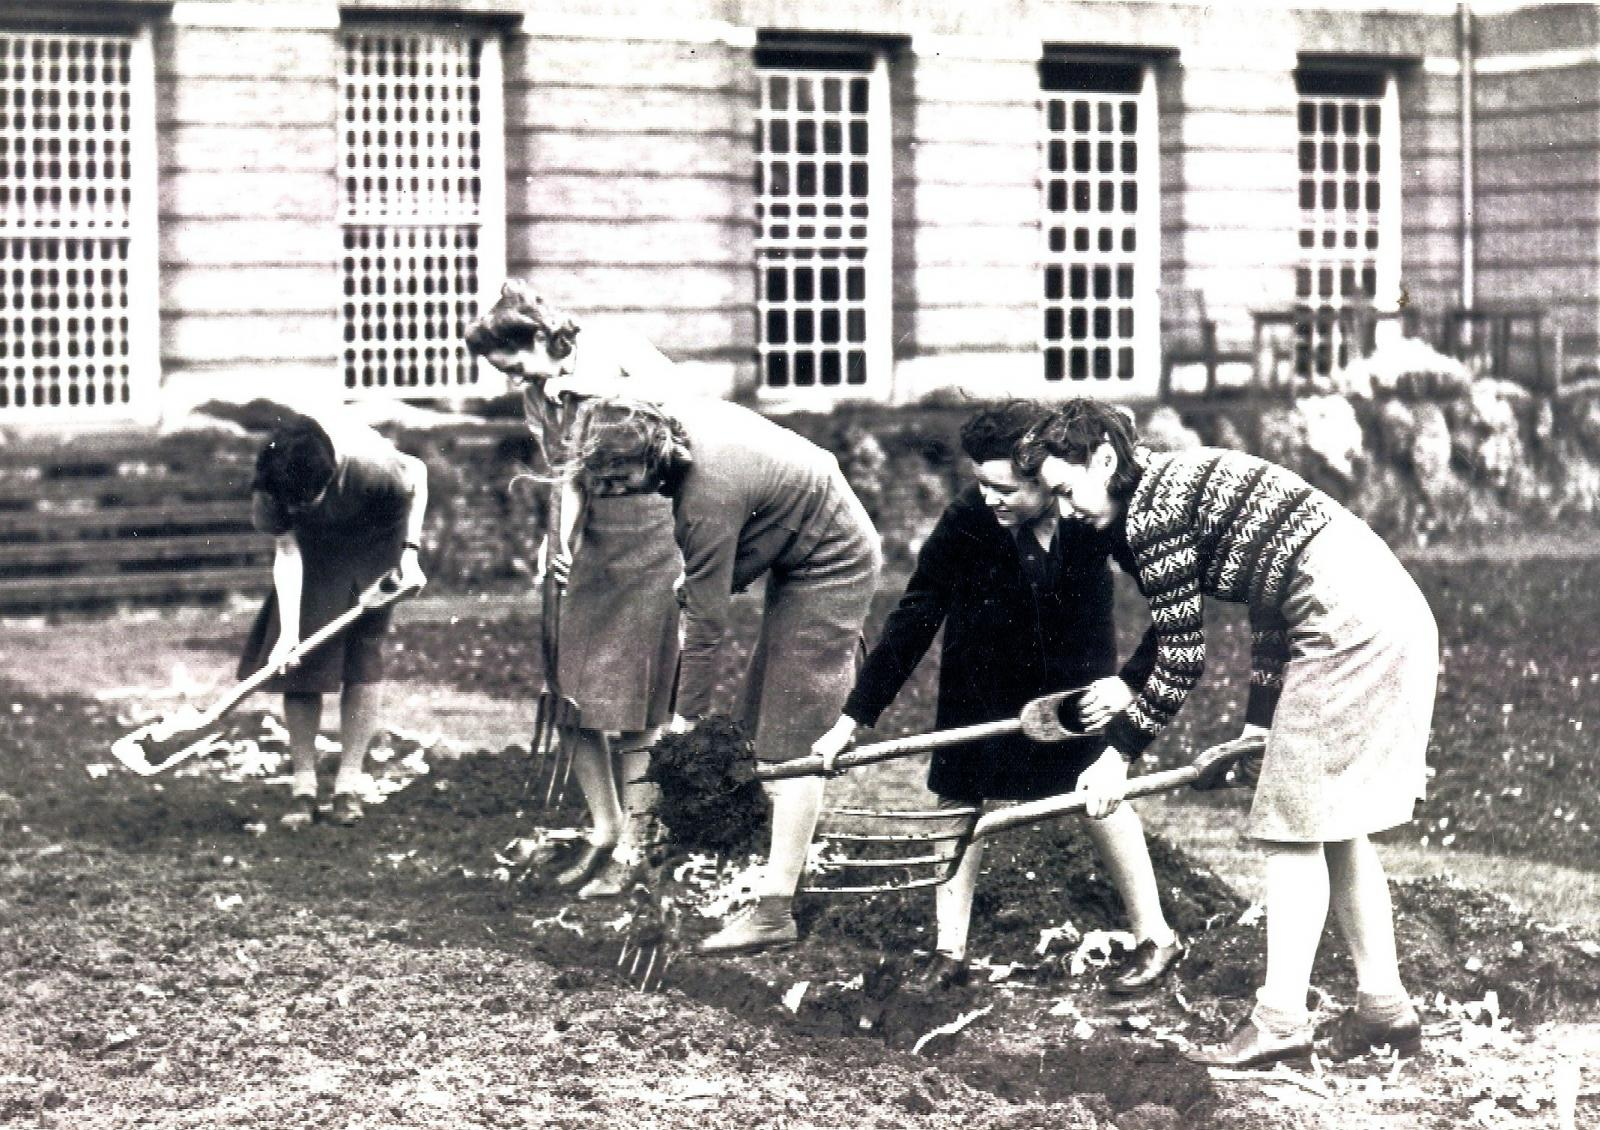 LMH students digging during WWII